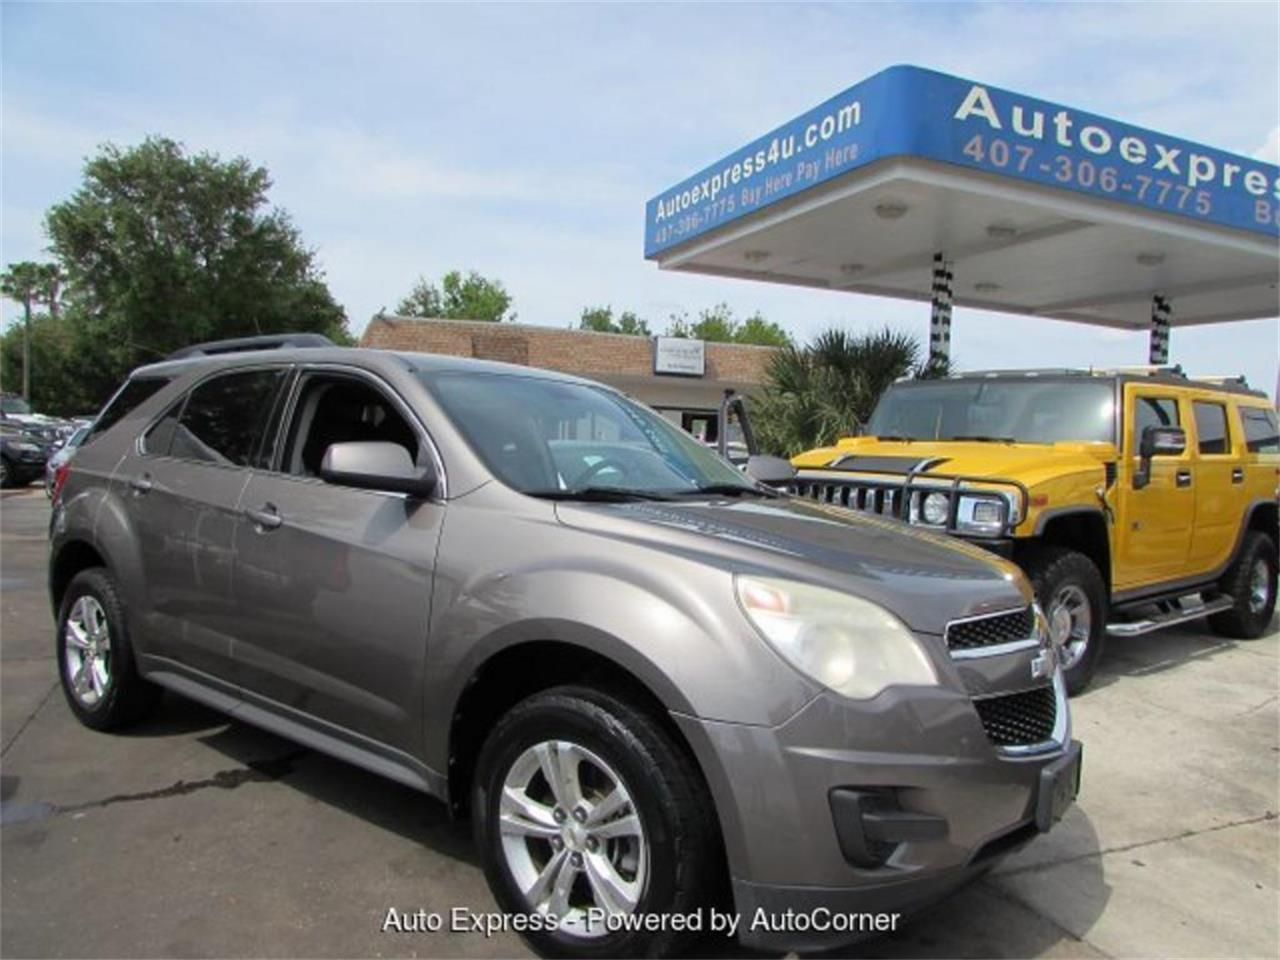 Large Picture of 2010 Equinox located in Florida - $8,999.00 - Q2A3